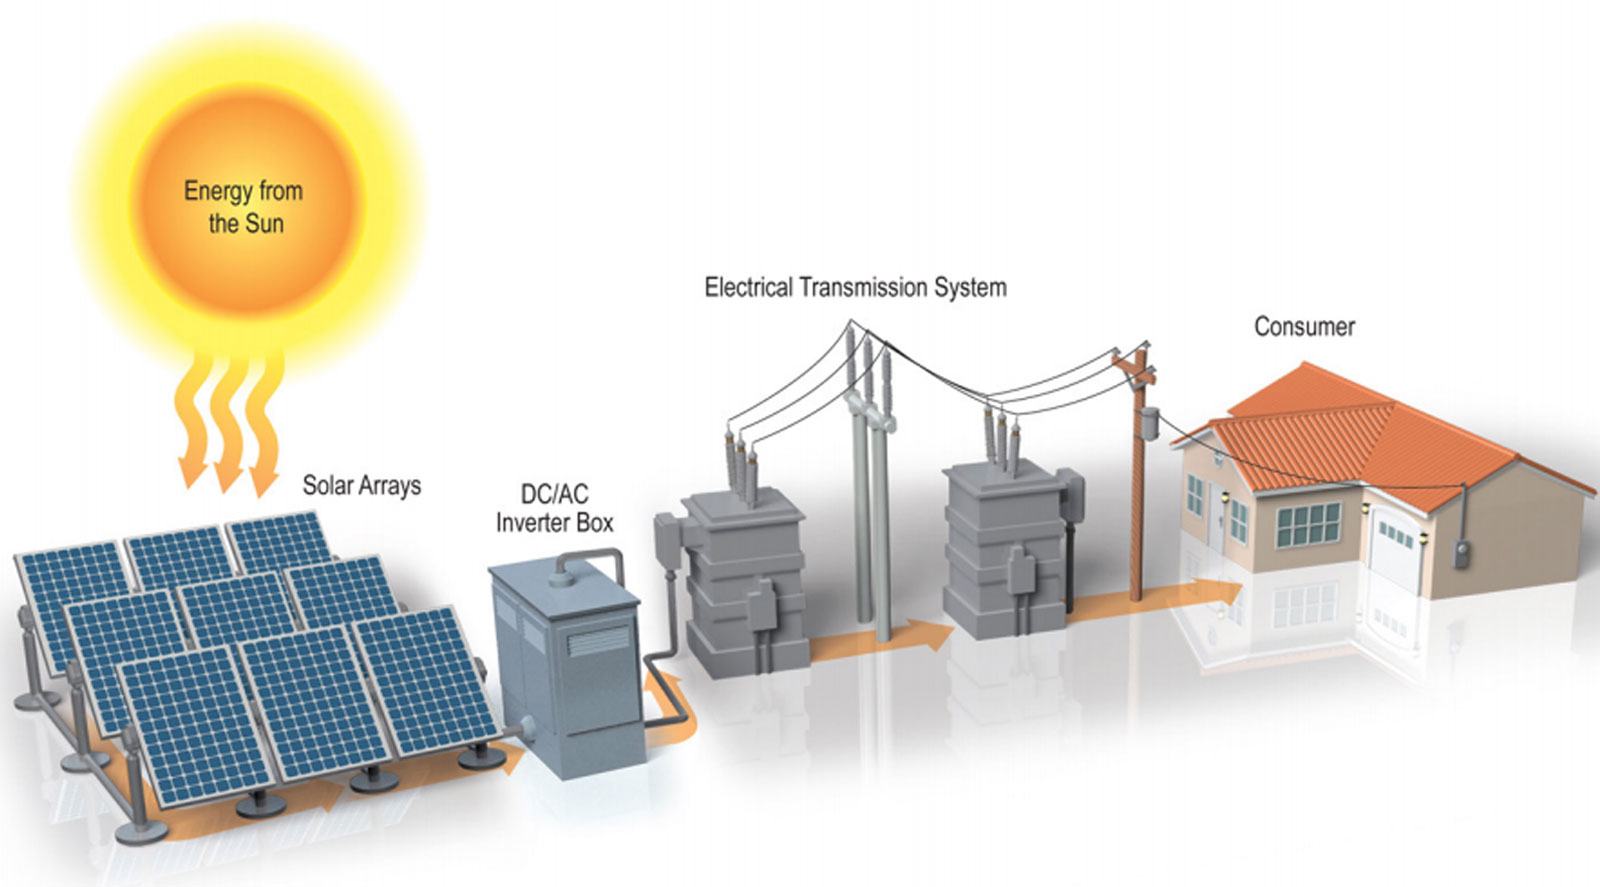 hight resolution of the equipment in a solar farm includes solar panels racking cables inverters transformers and a power line or substation to deliver the power to the